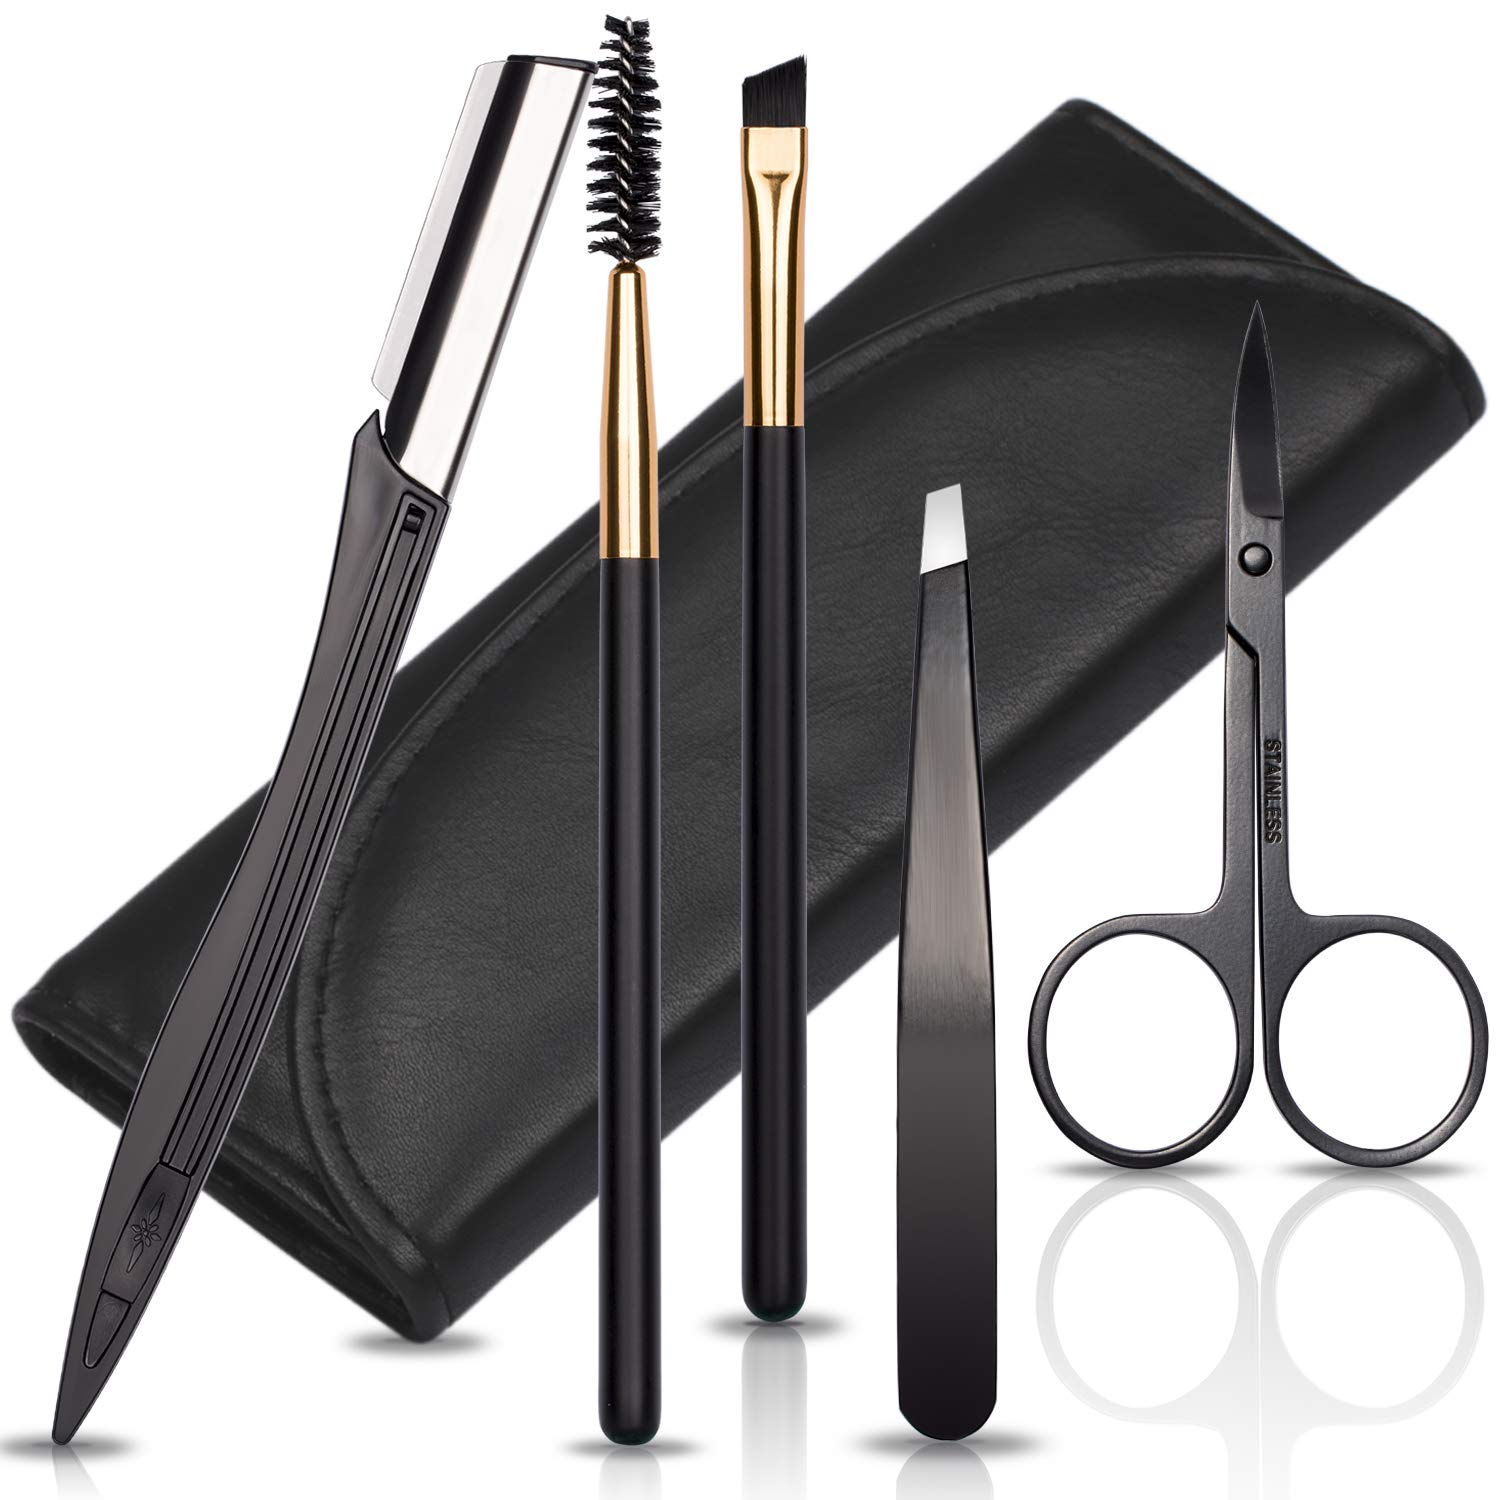 Eyebrow Tweezers Scissors and Razors Set - KASI 5pcs Stainless Steel Eyebrow Trimmer Shaver Shaper and Angled & Spoolie Brows Brushes Eyebrow Grooming Kit for Women and Men Black